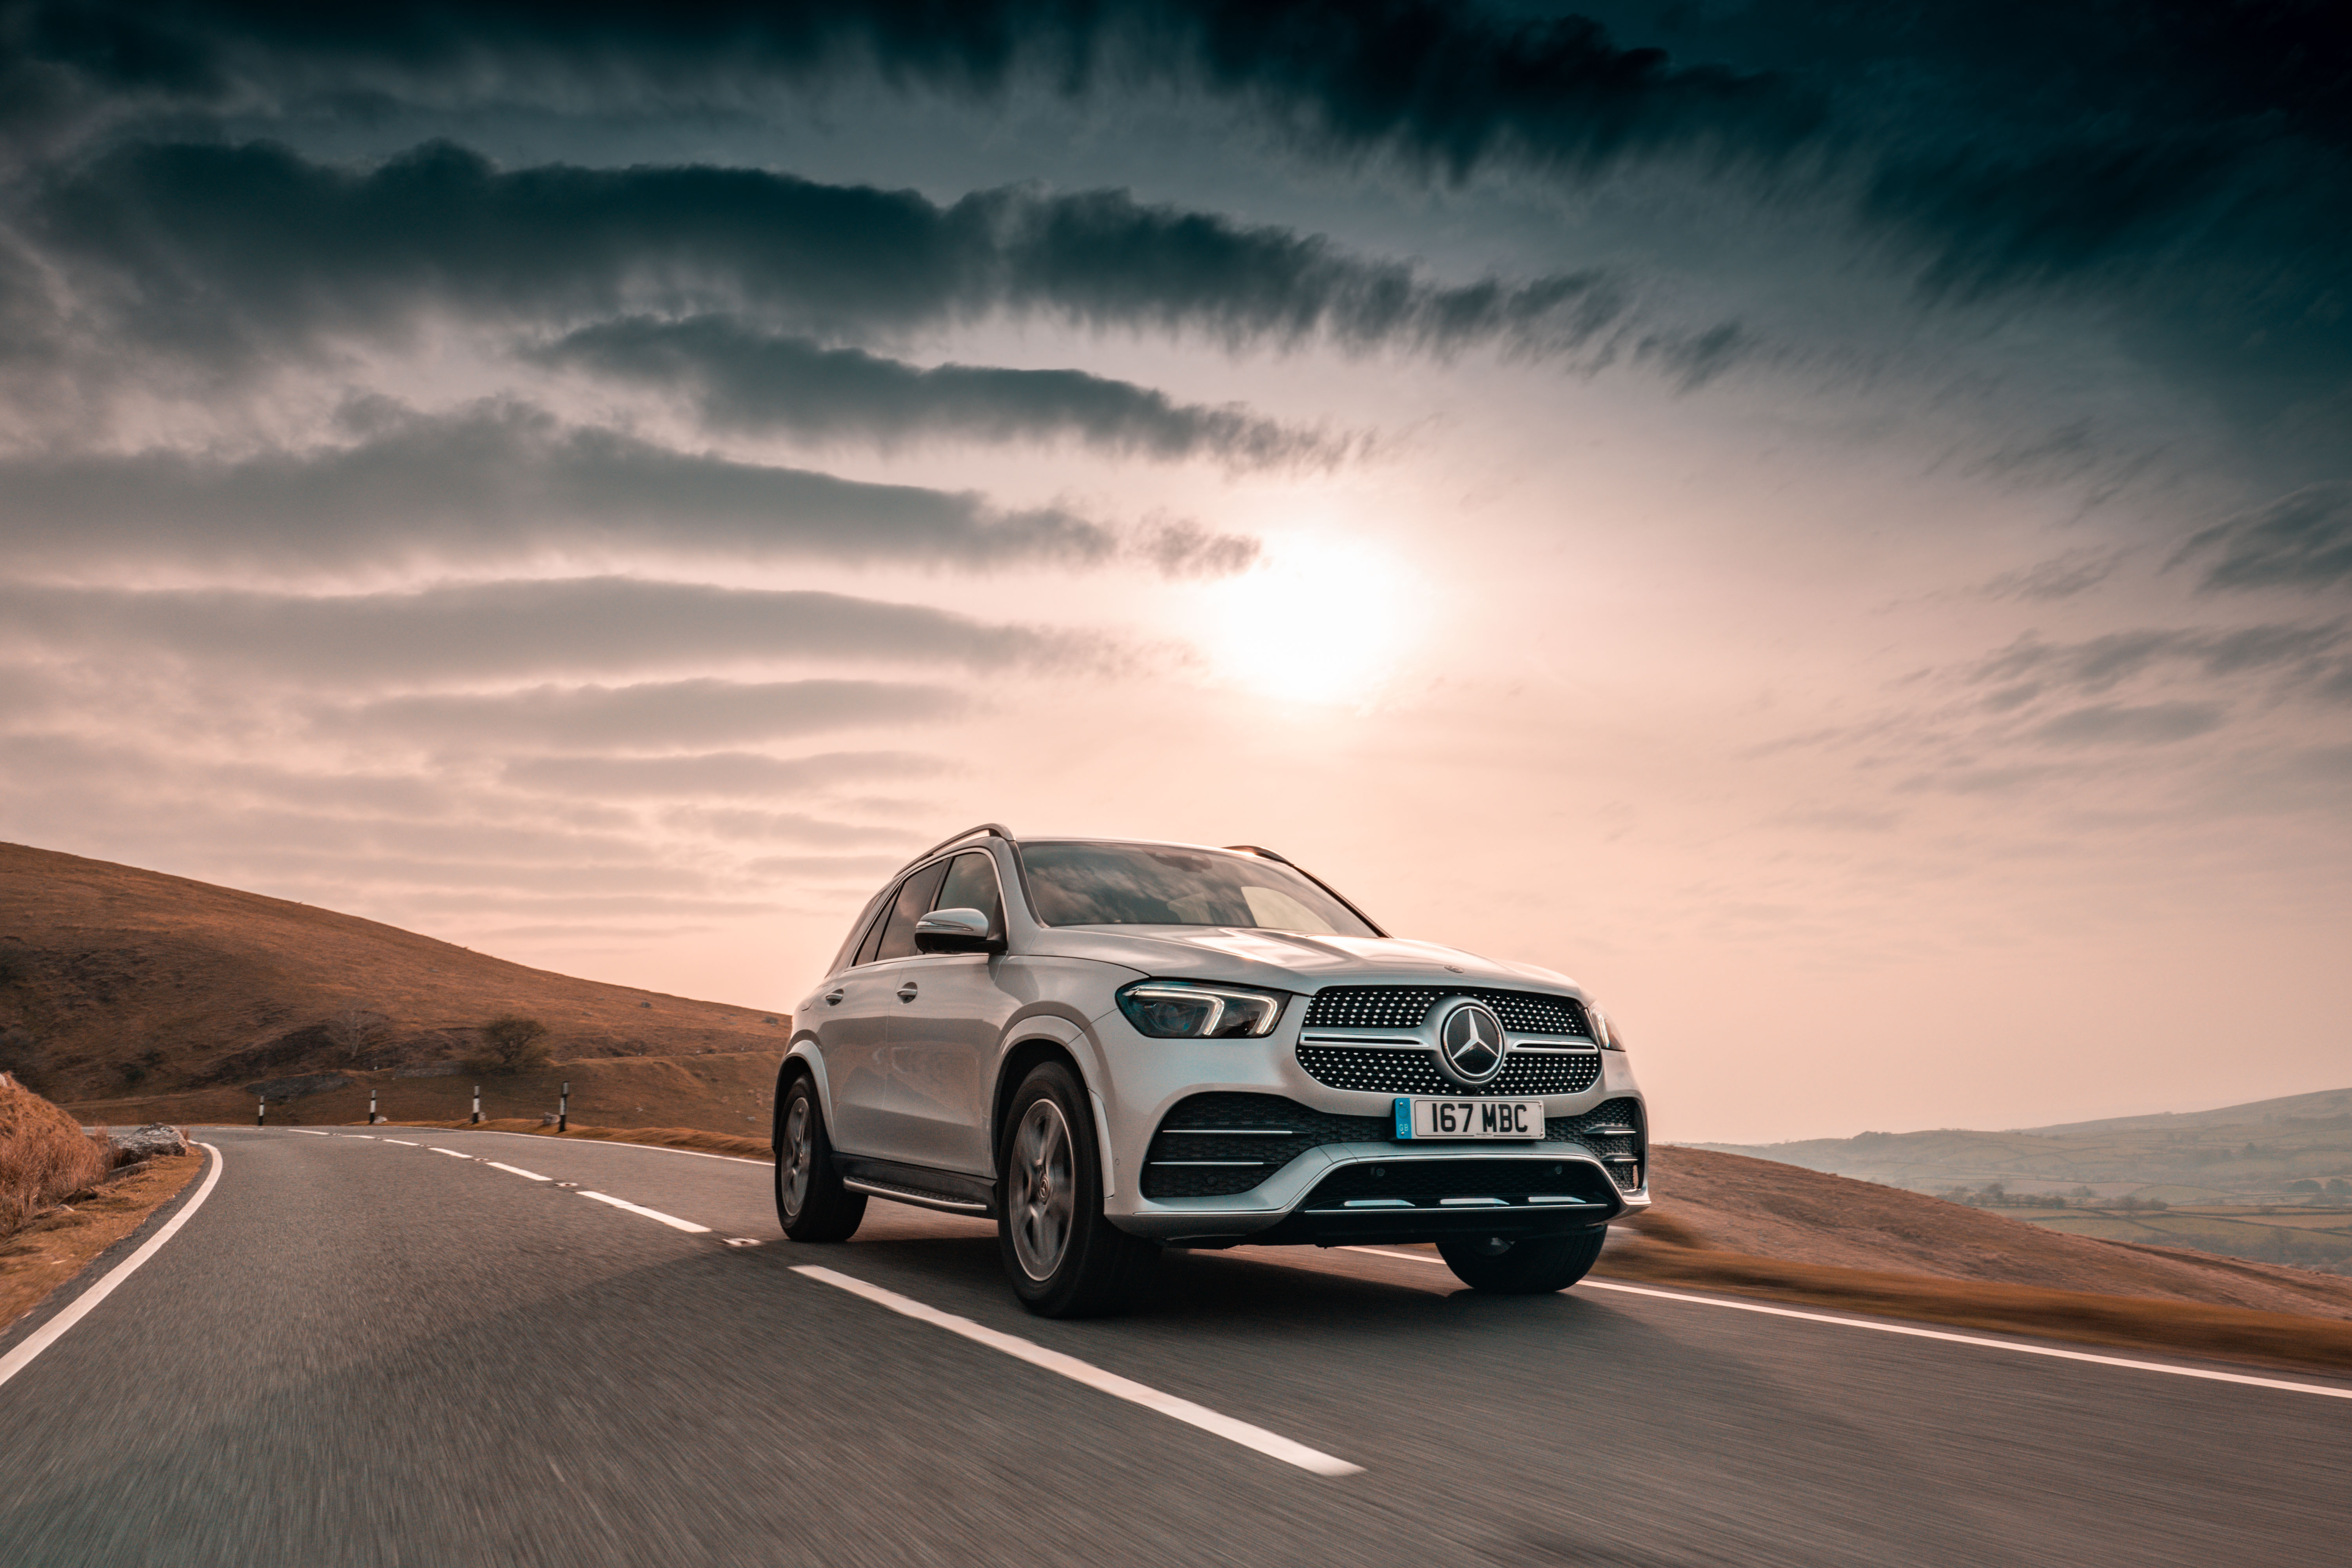 GLE 300d 4Matic AMG Line 5dr 9G-Tronic